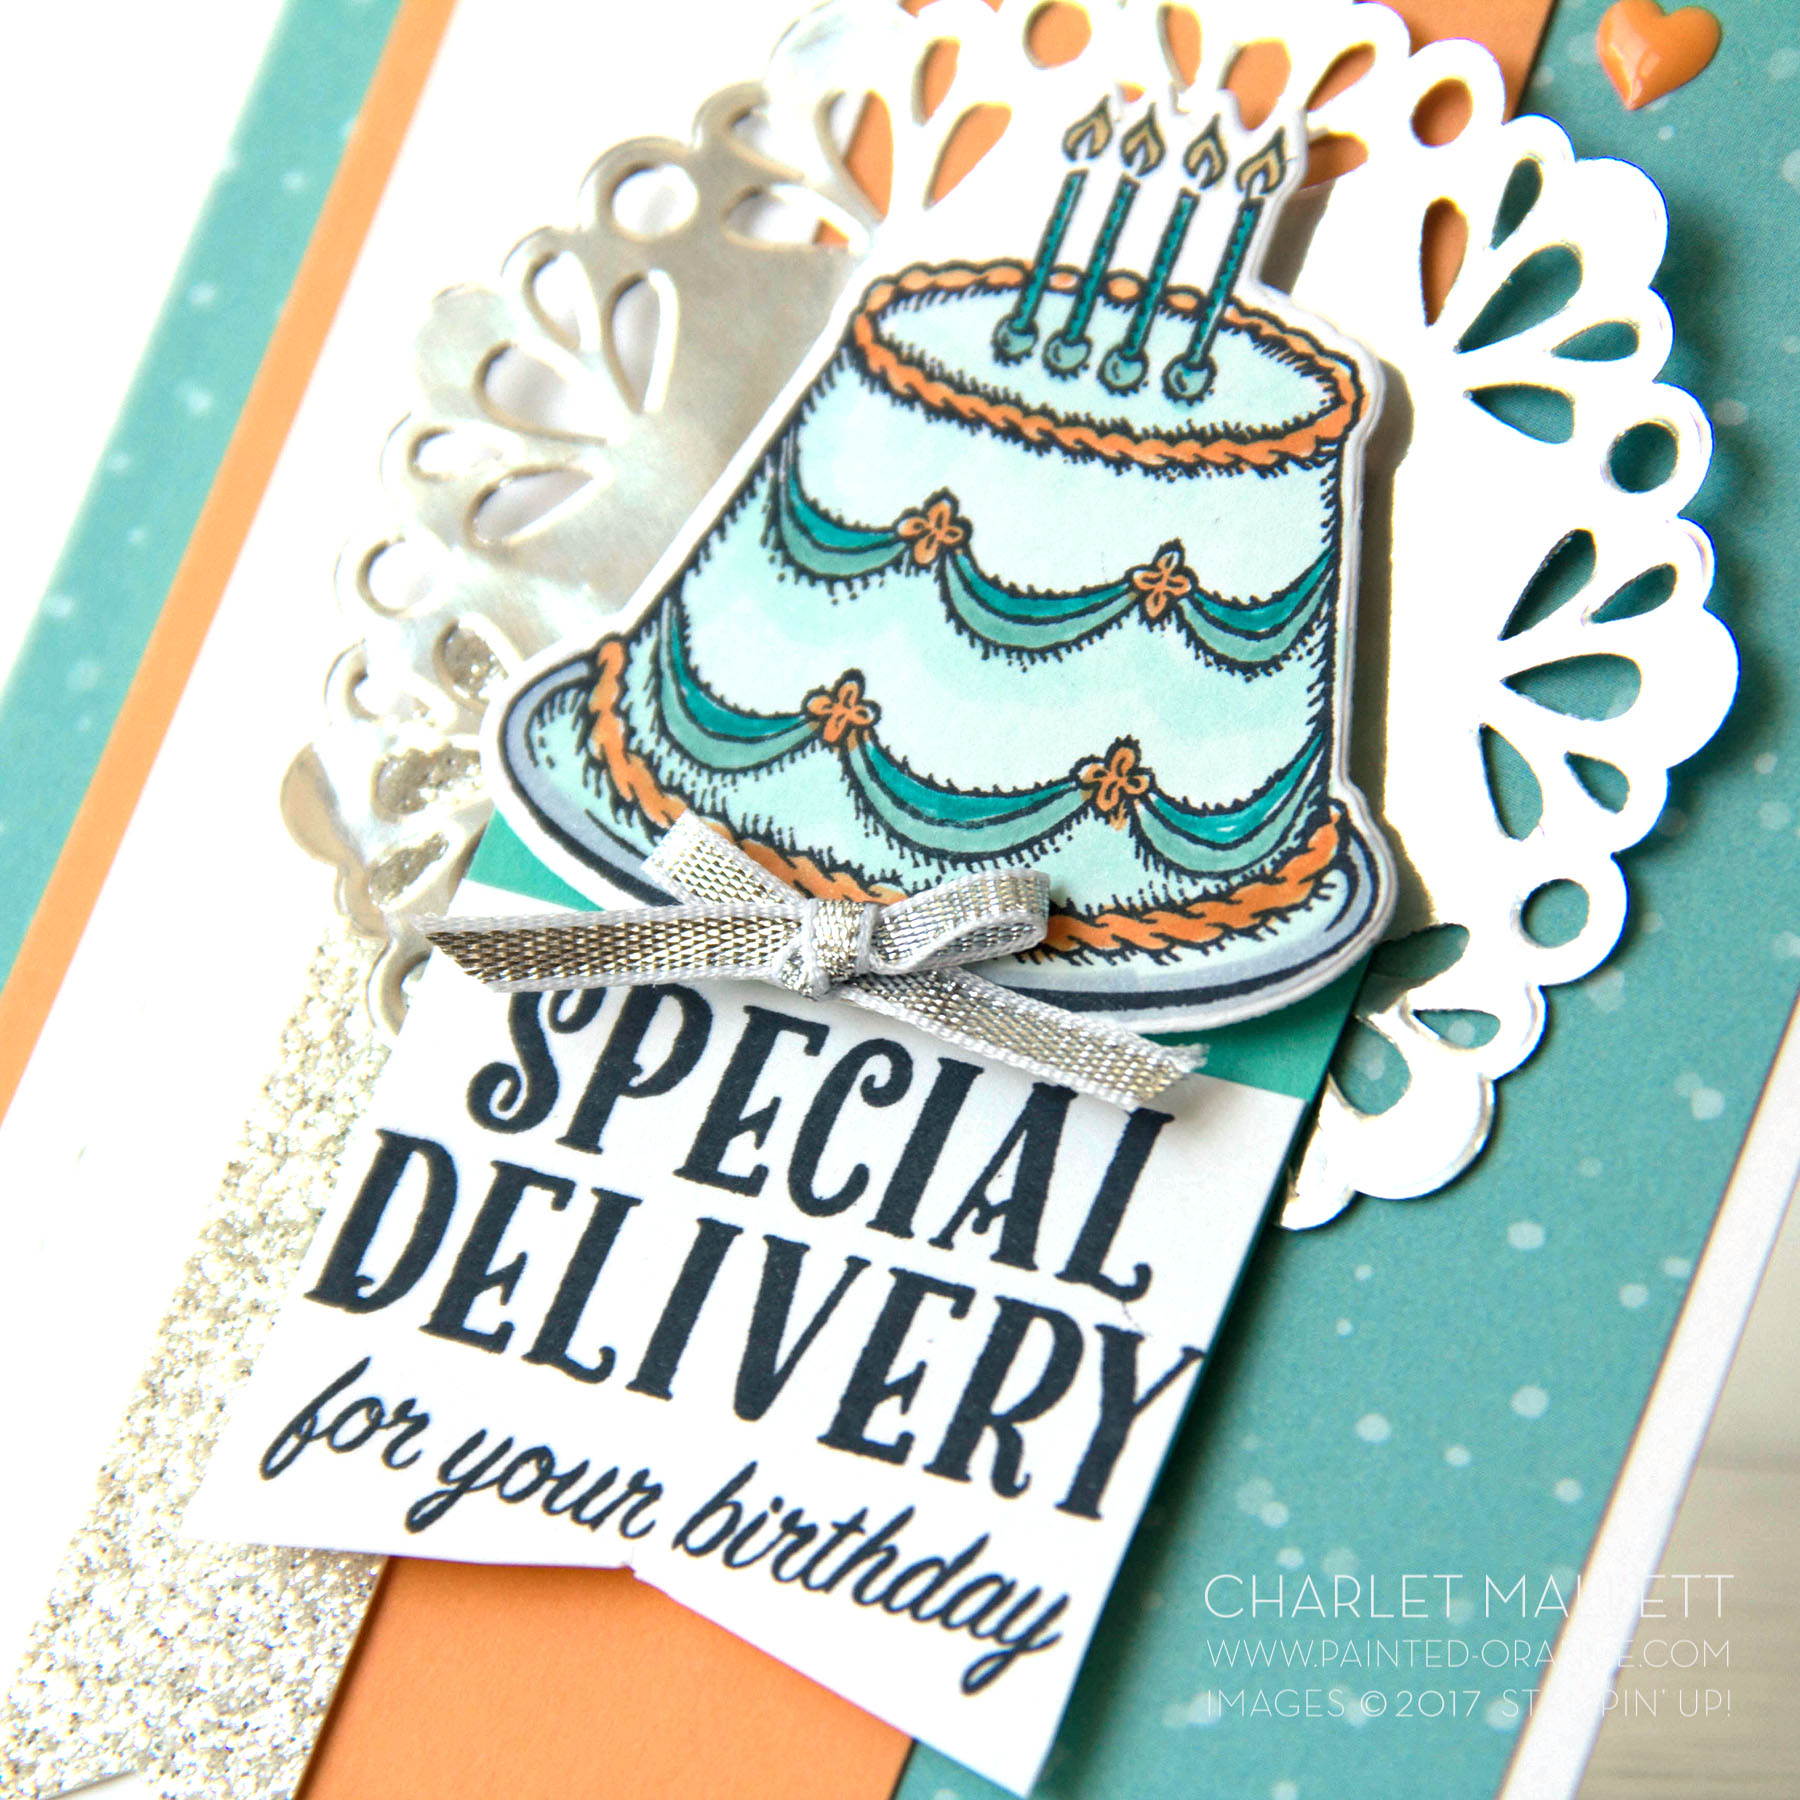 Birthday Delivery Cake Card - Charlet Mallett Stampin' Up!